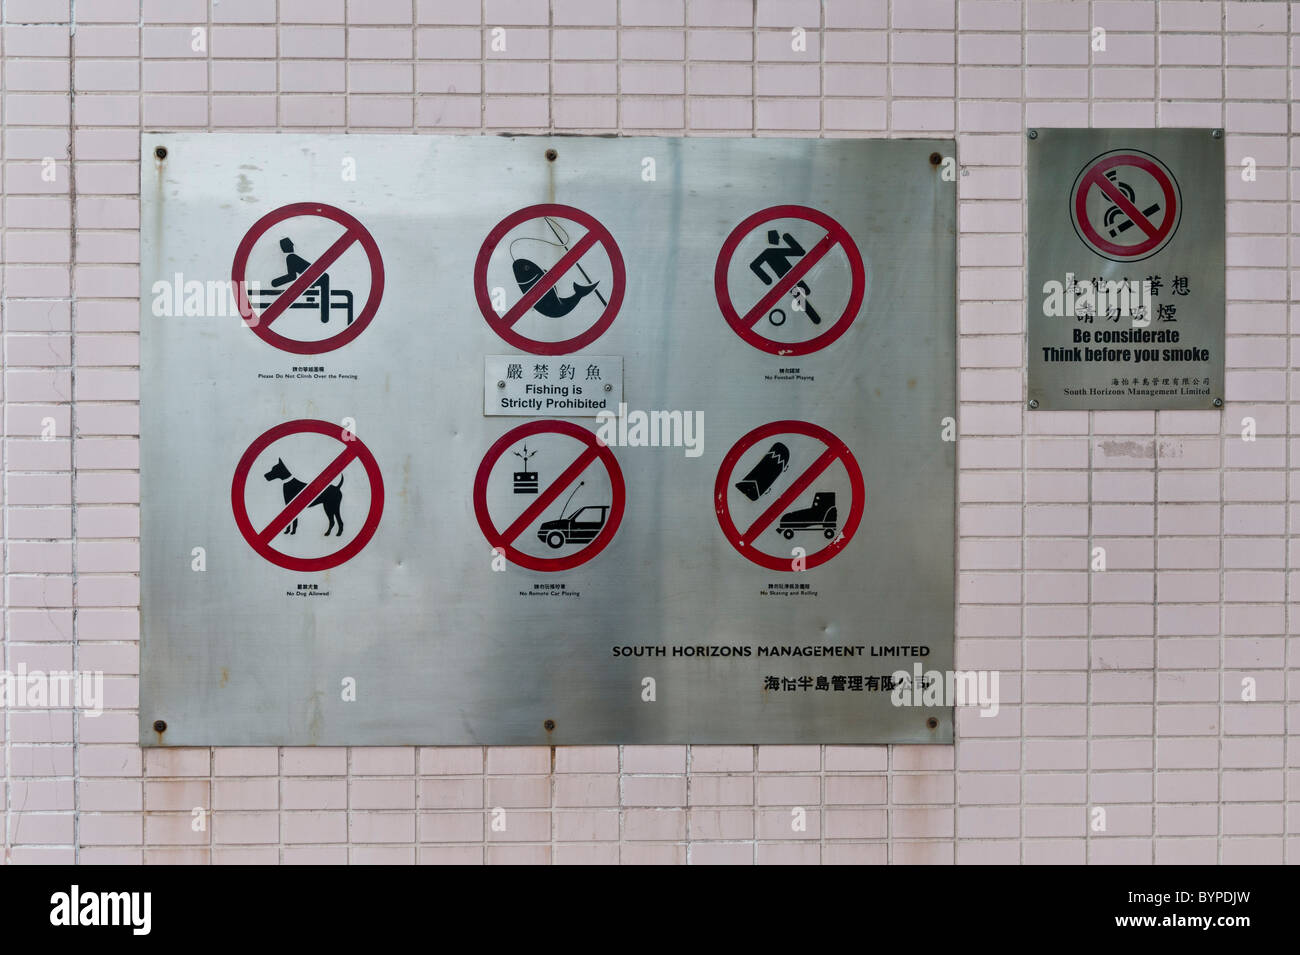 Much forbidden in this building in Hong Kong. - Stock Image